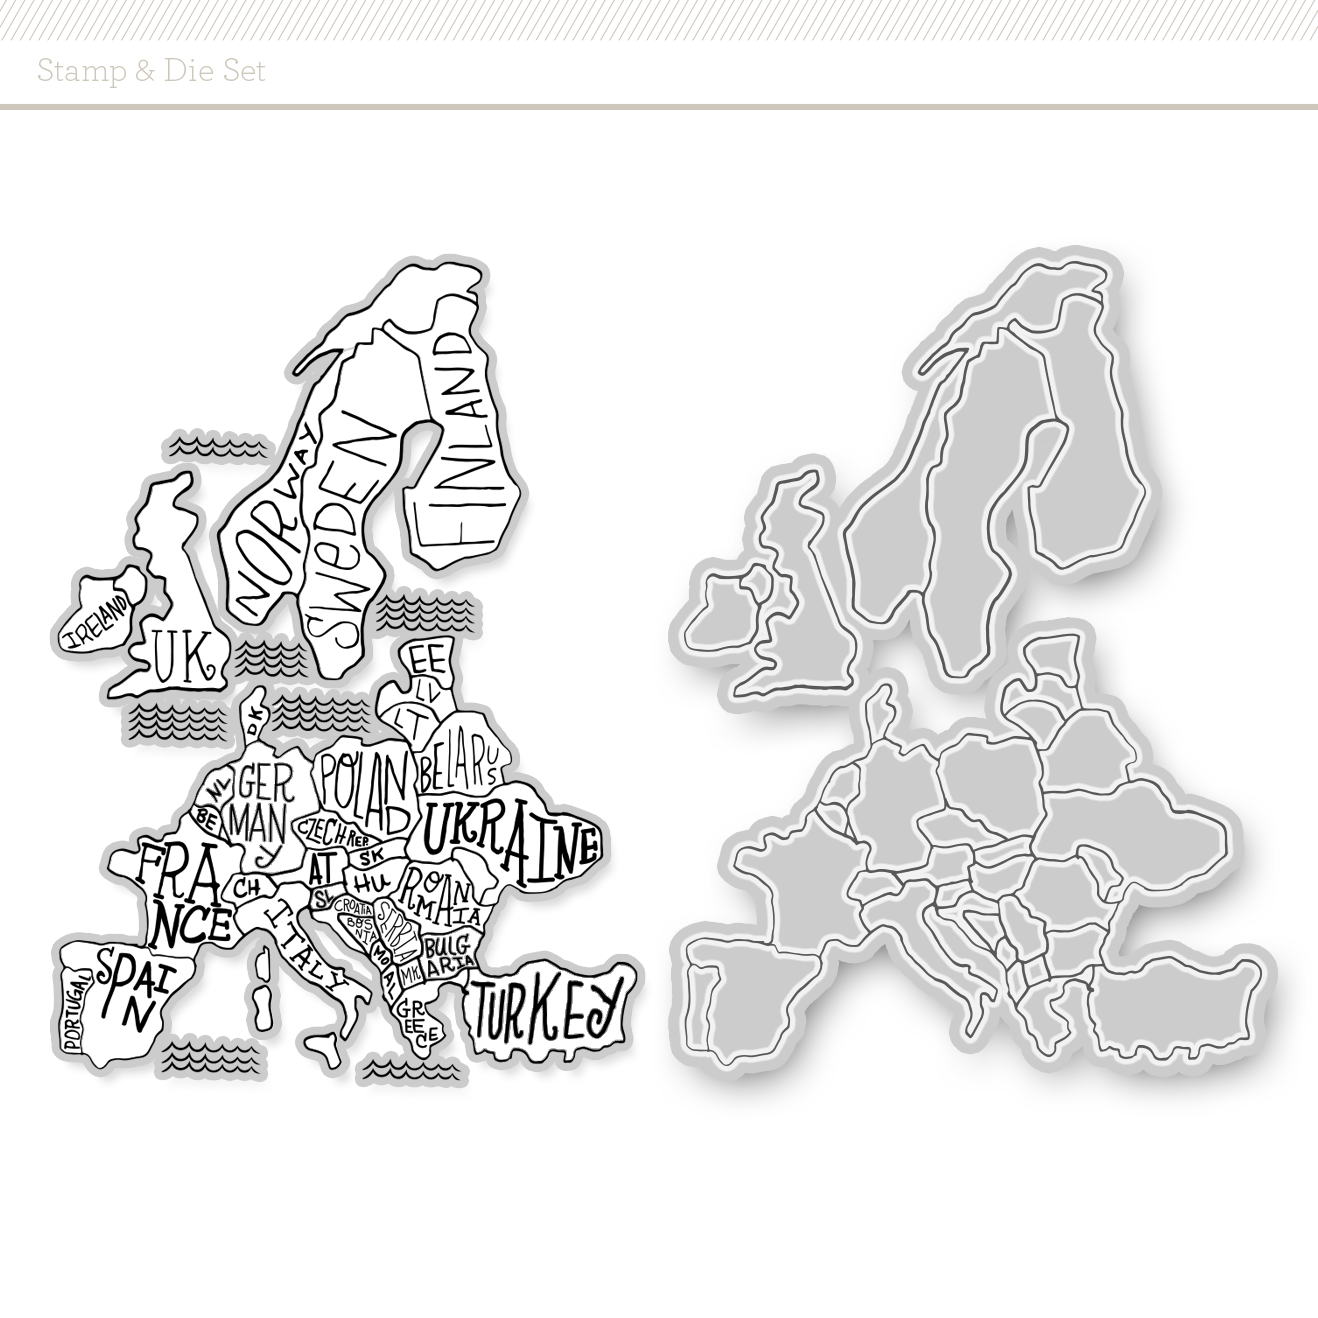 93329-EUROPE-STAMP_DIE-SHOPIMAGE.png